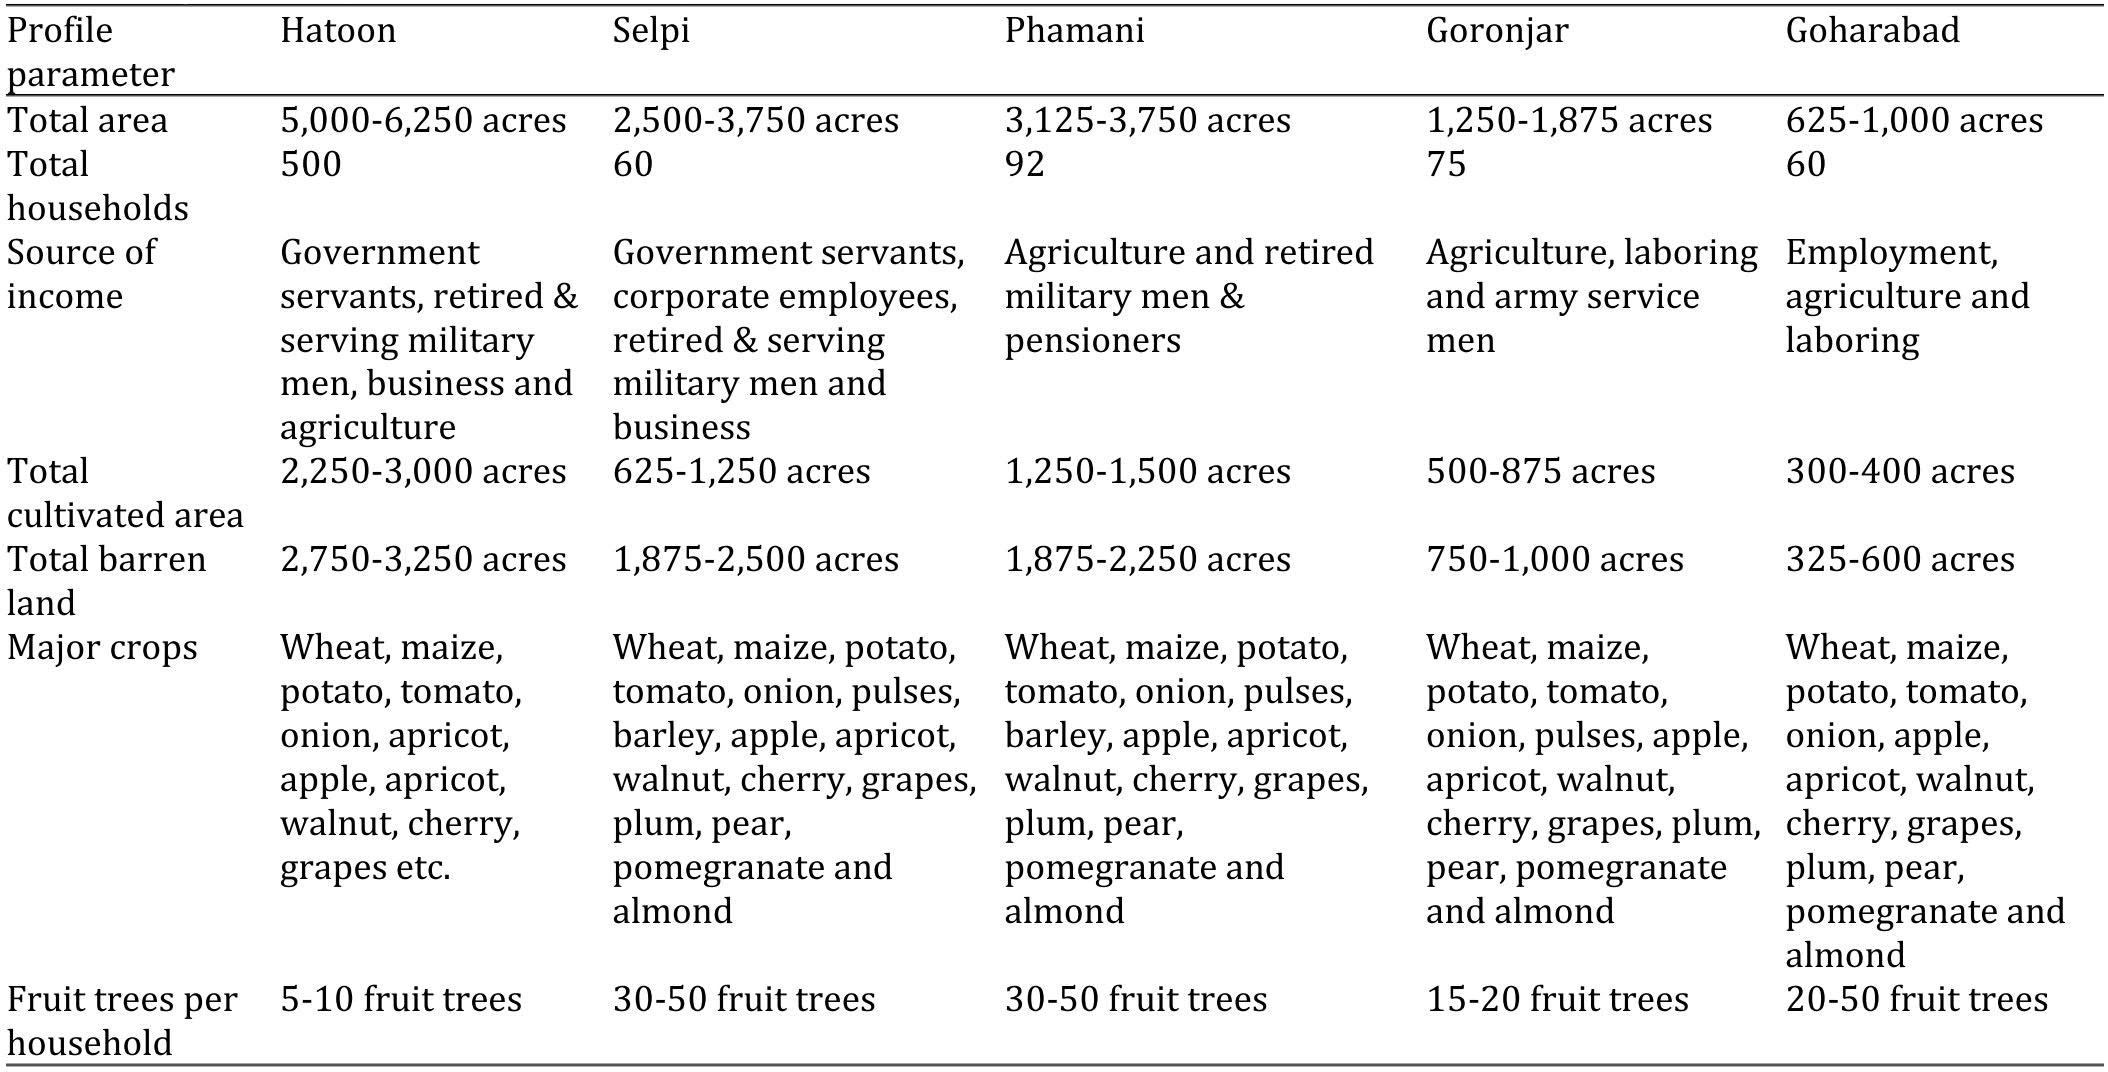 Journal of Horticultural Science and Technology 2(1): 27-31